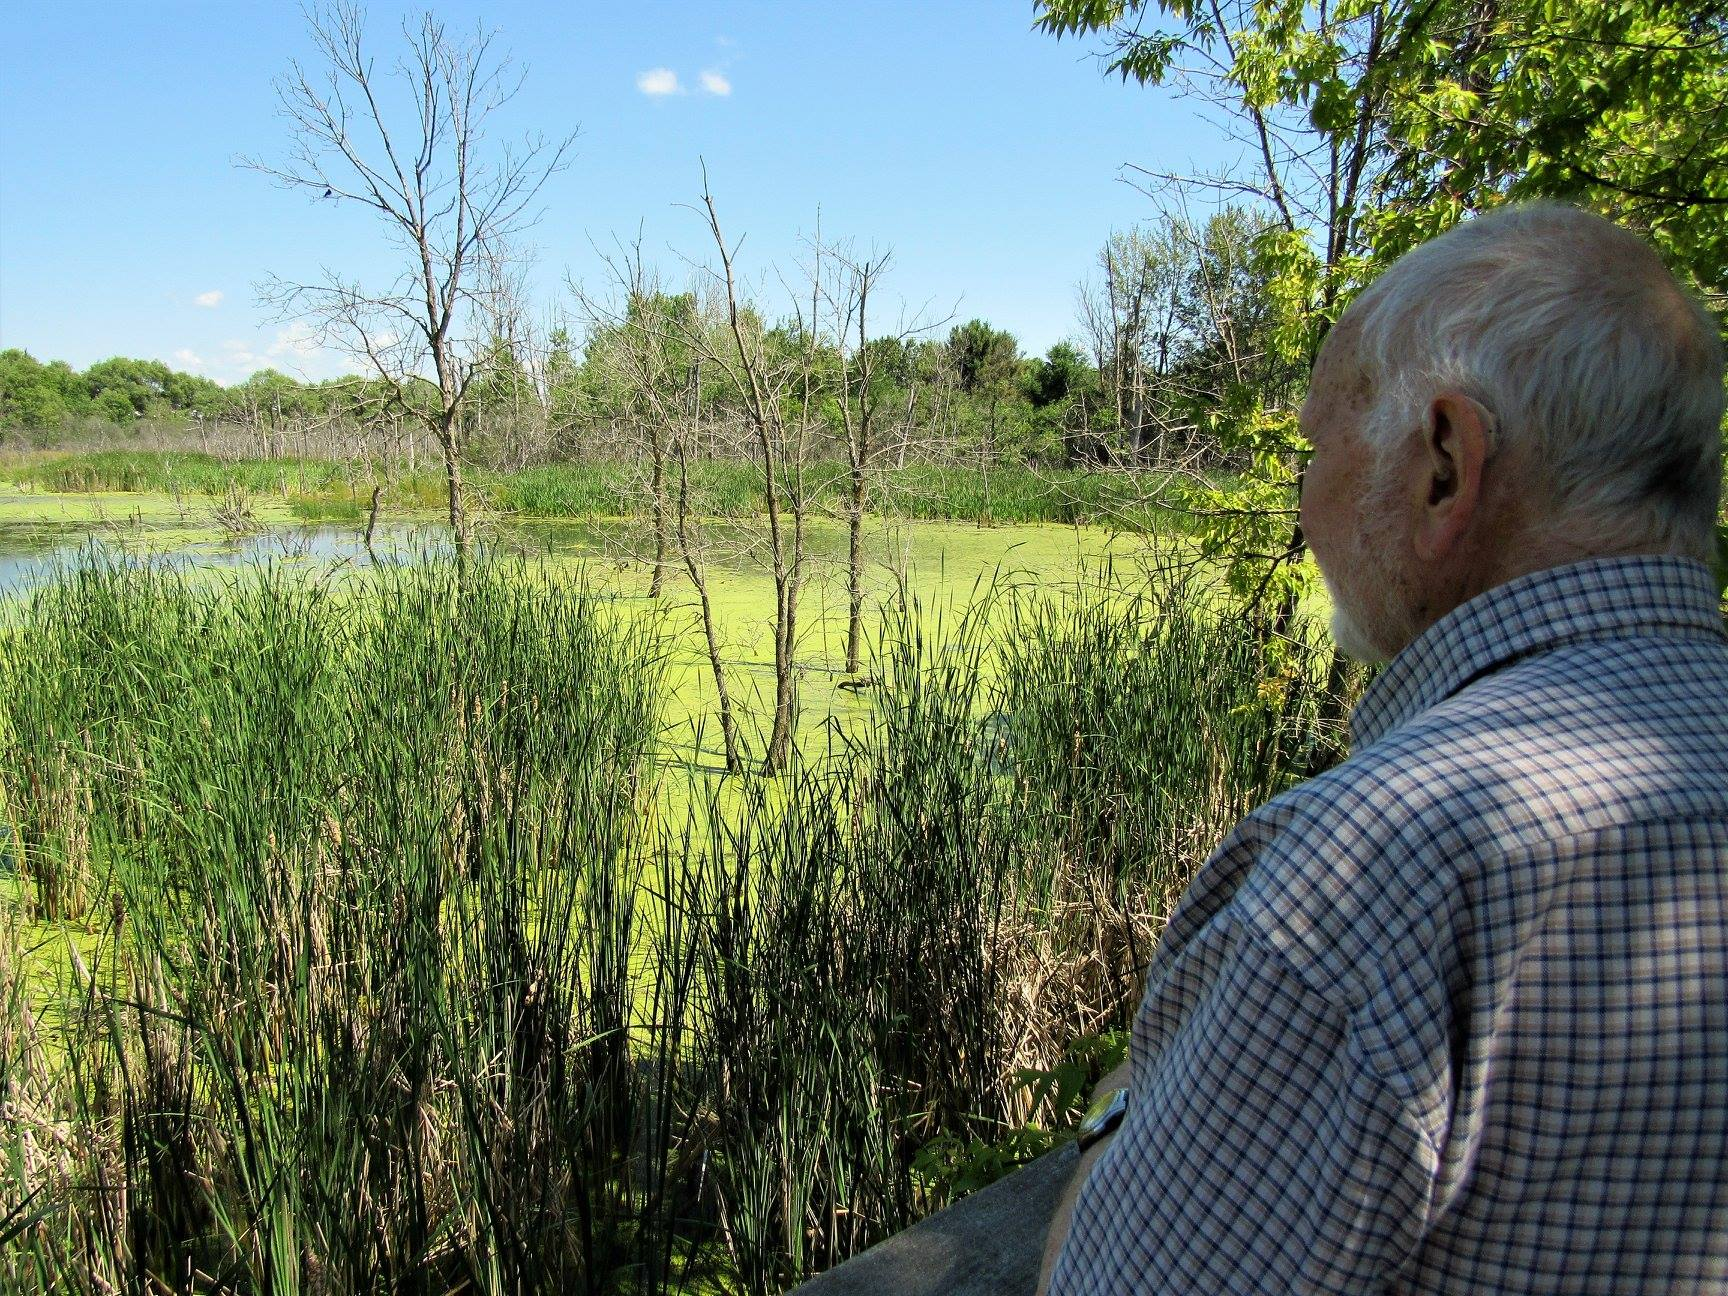 Duck release site is inaccessible, wild and great habitat with lots of natural food.